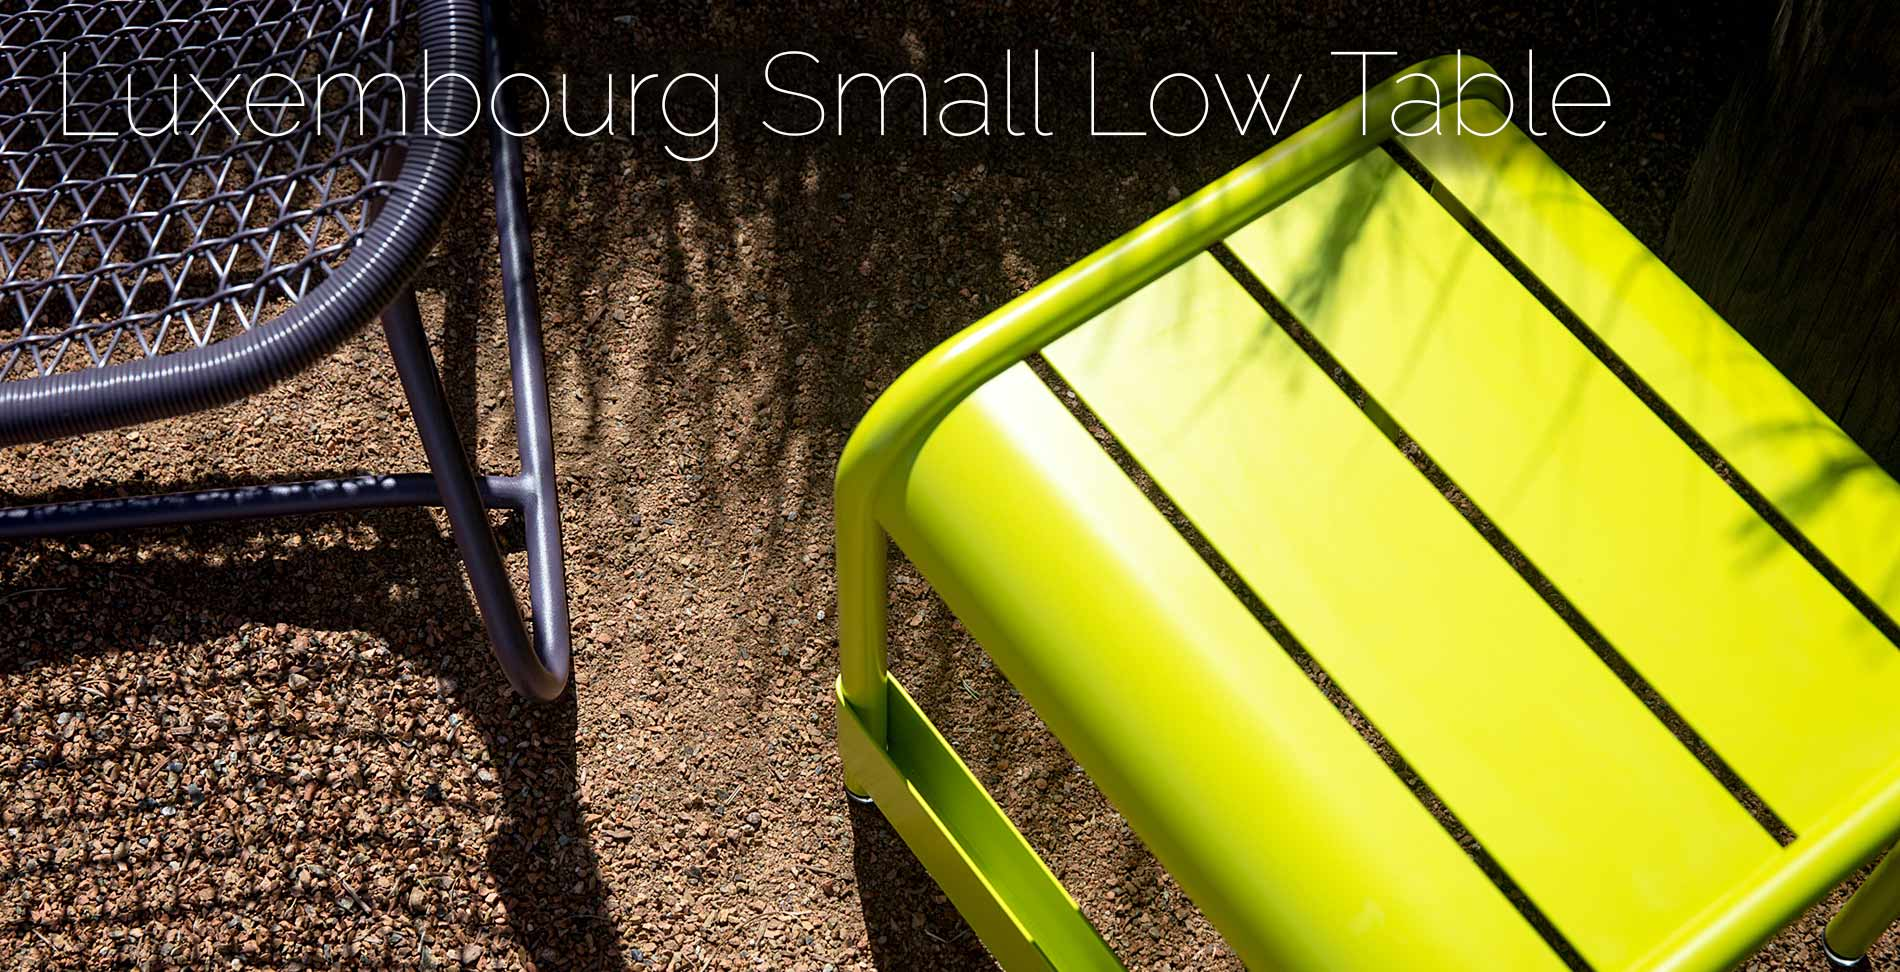 Fermob Luxembourg Small Table or Footrest